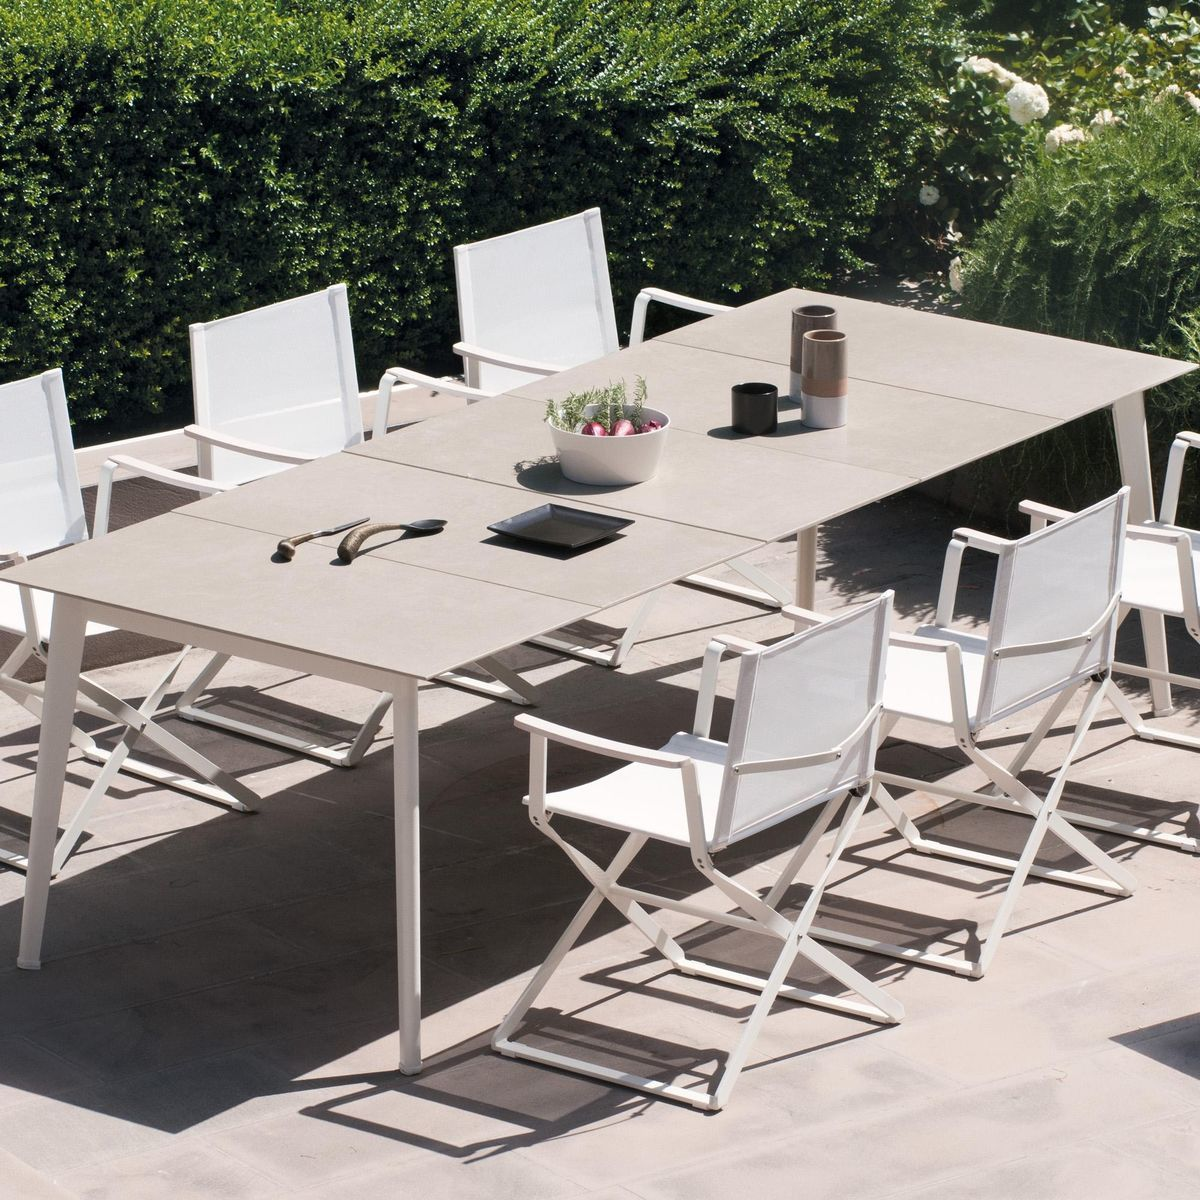 Emu   Kira Dining Table Extendable Outdoor   White/natural/porcelain  Stoneware Top/